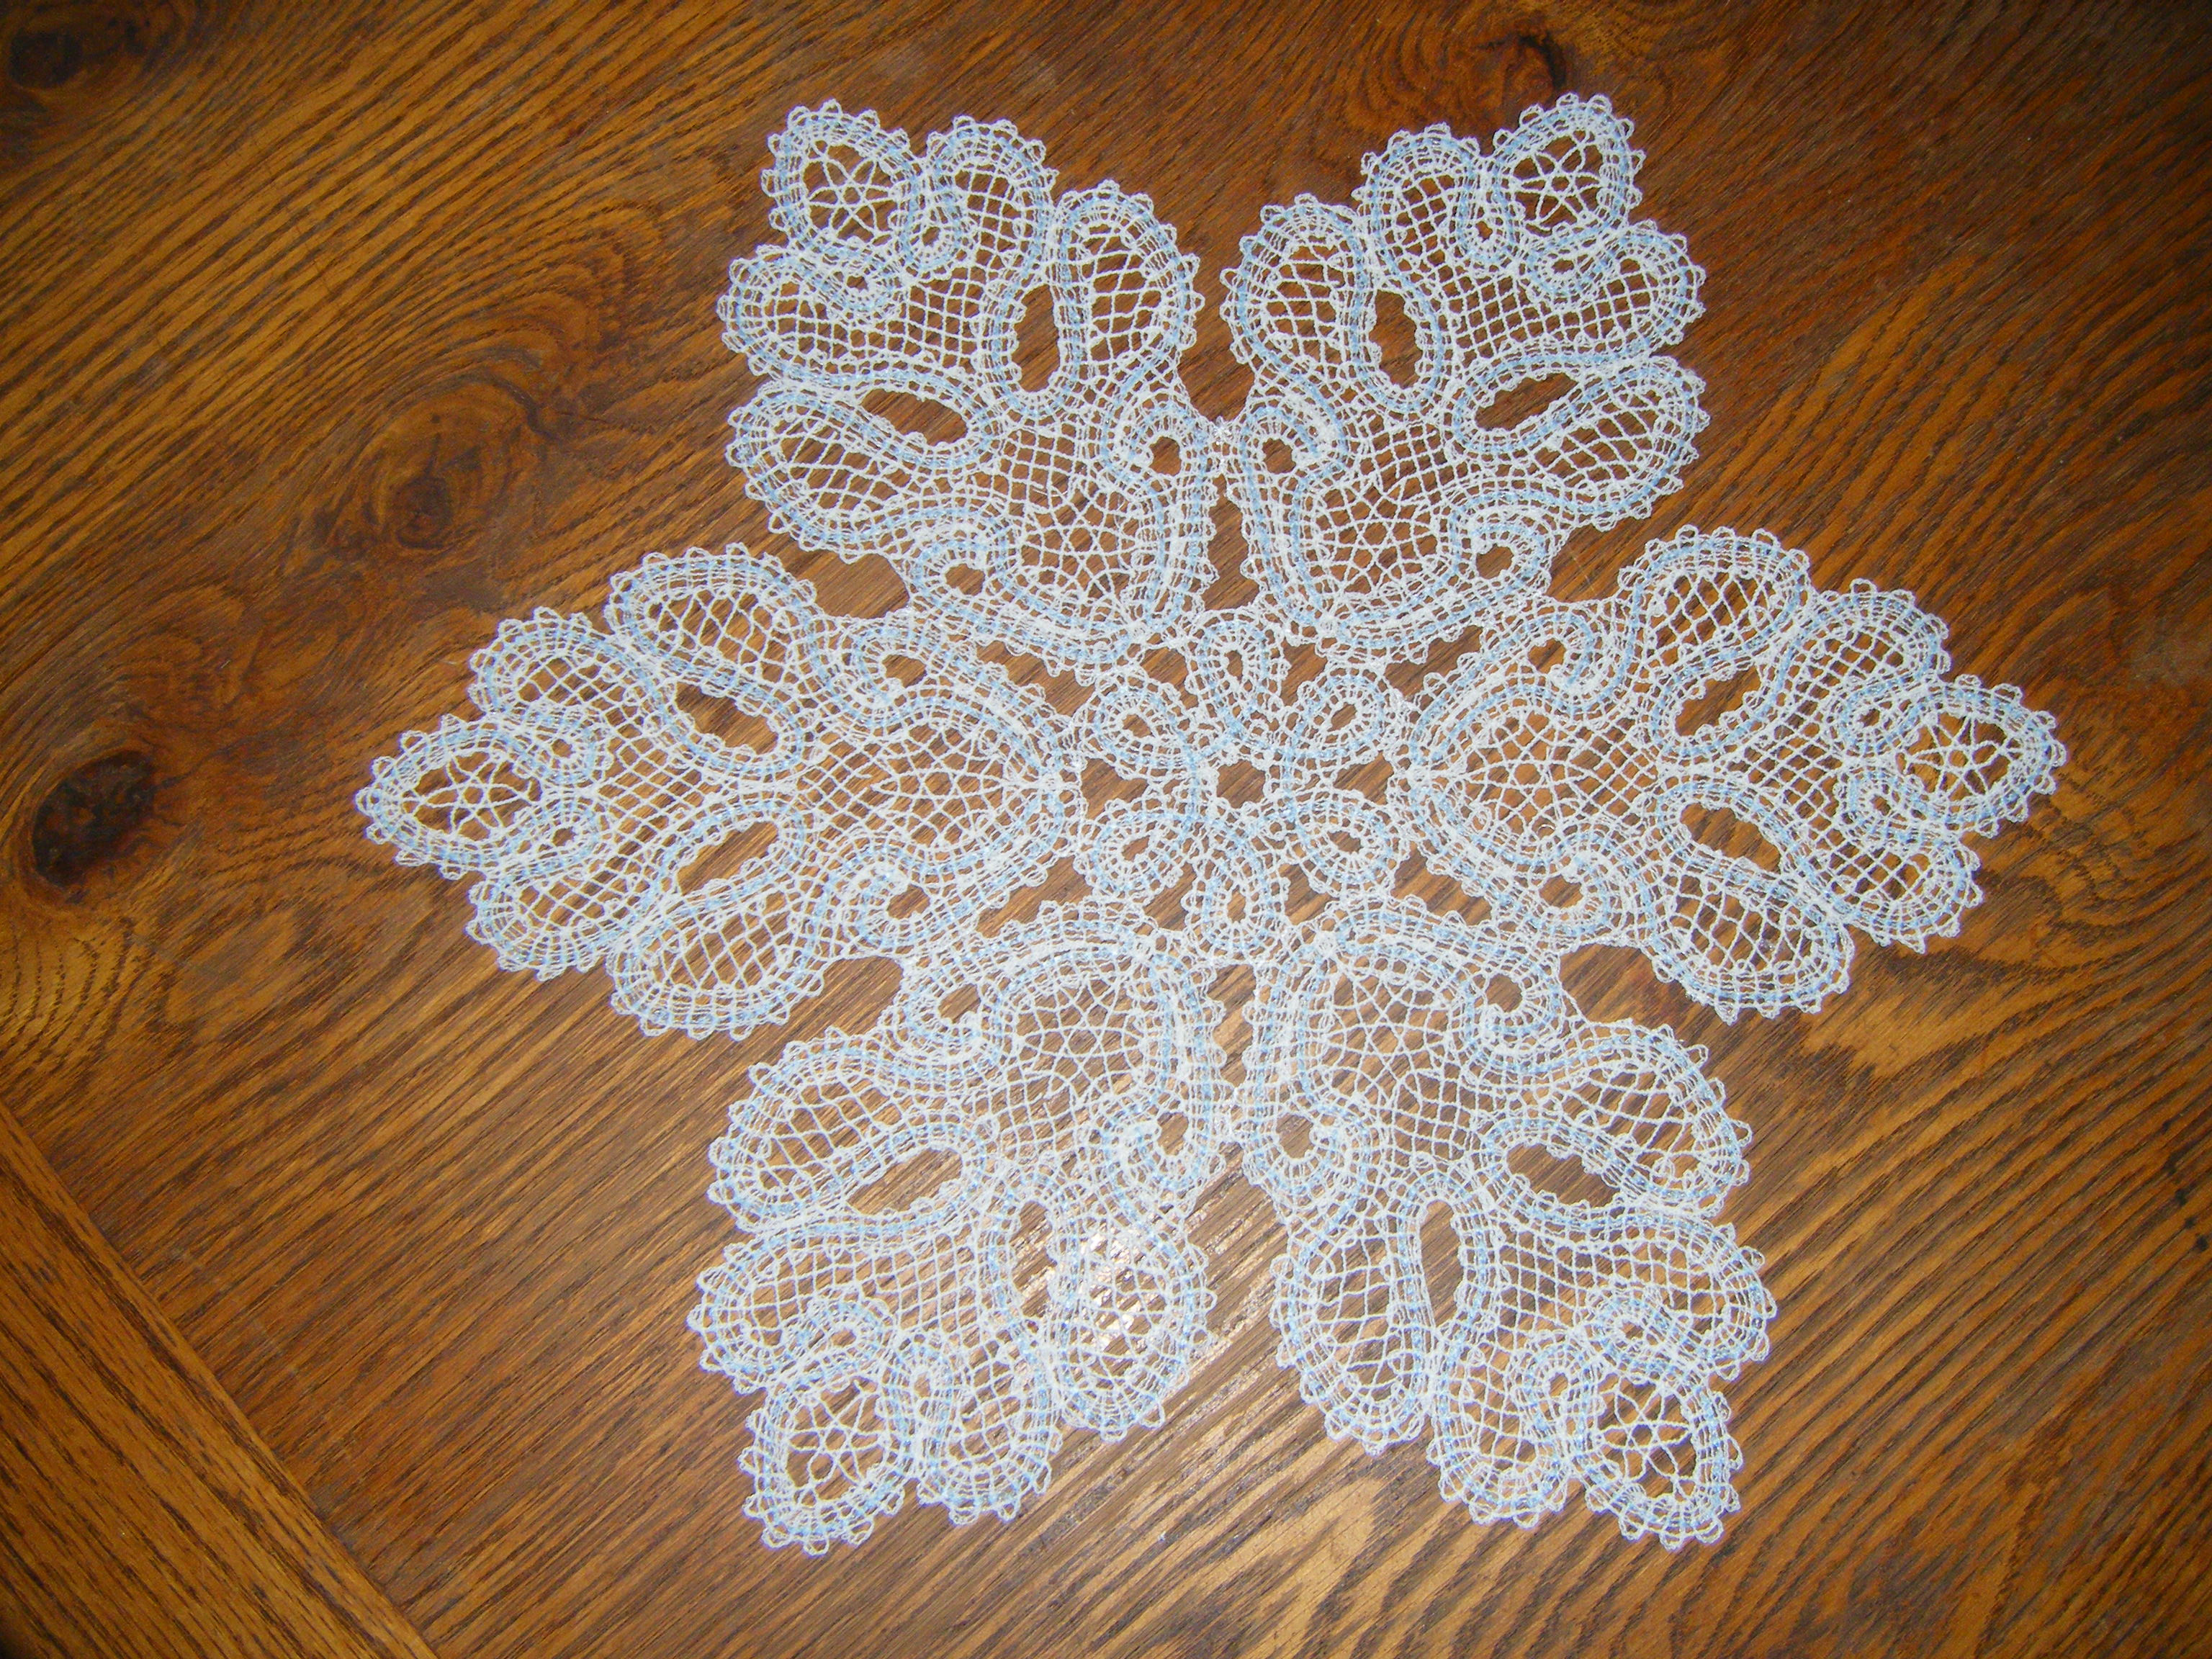 Crochet Ideas Inspirational How to Crochet Snowflake Patterns 33 Amazing Diy Of Brilliant 40 Pictures Crochet Ideas